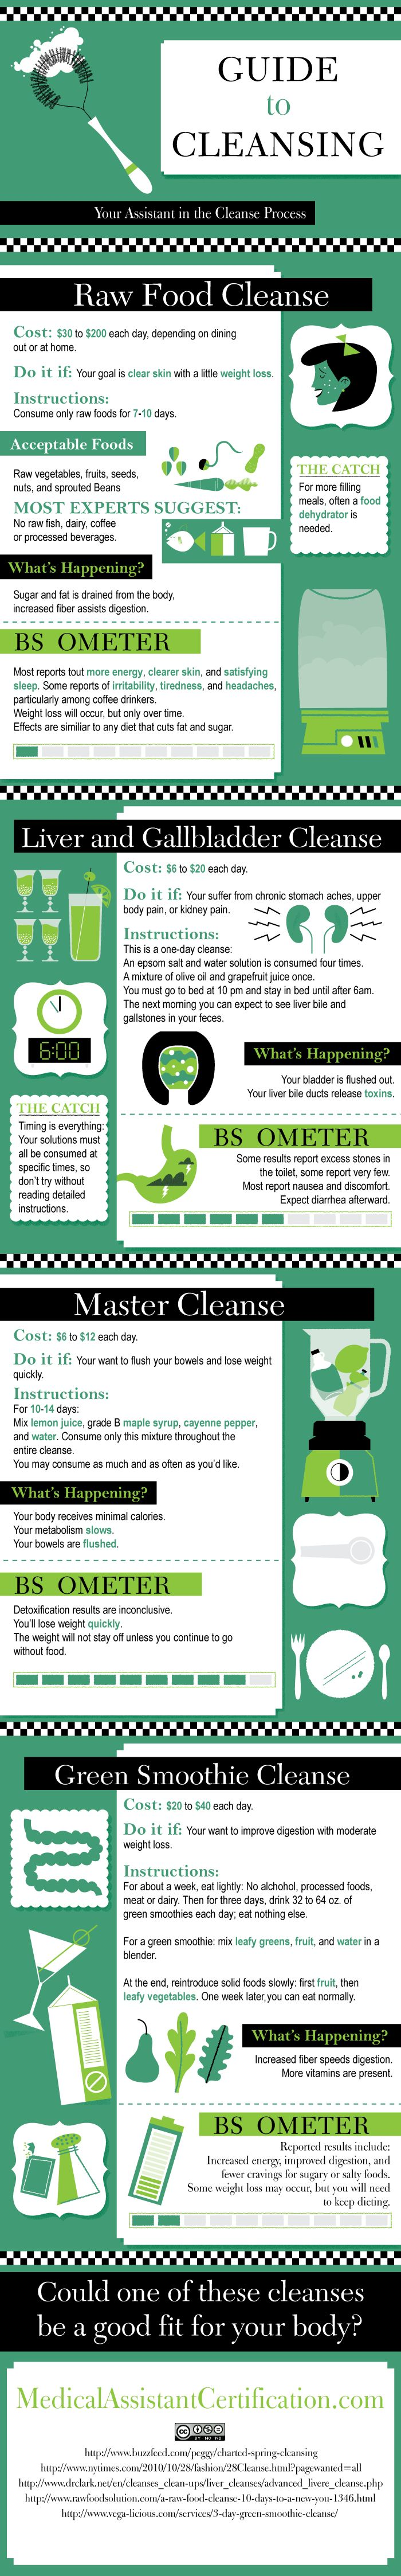 Guide to Cleansing